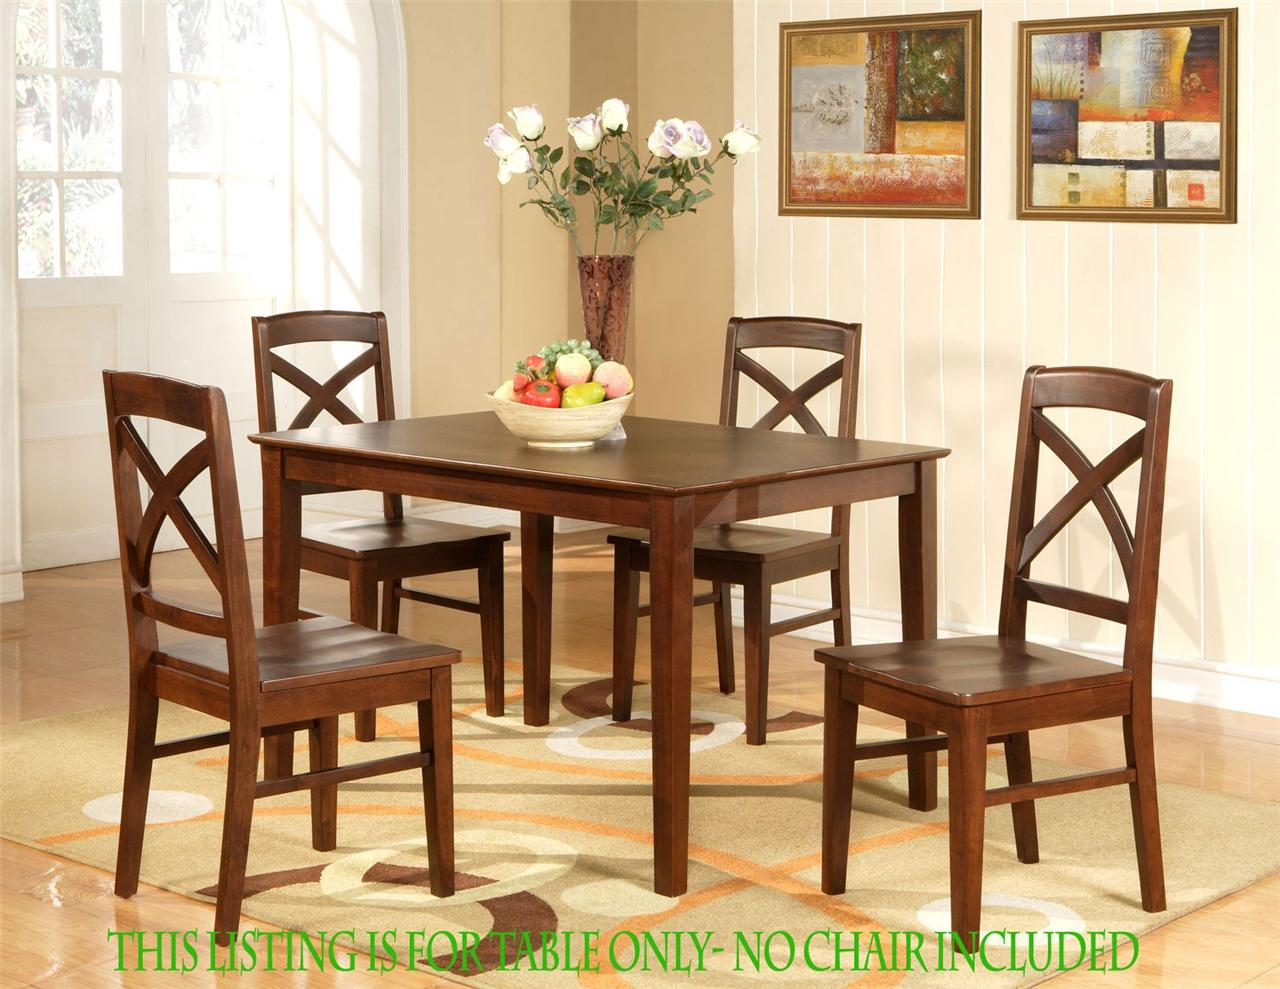 Rectangular Dining Room Kitchen Table 36 Quot X48 Quot In Espresso